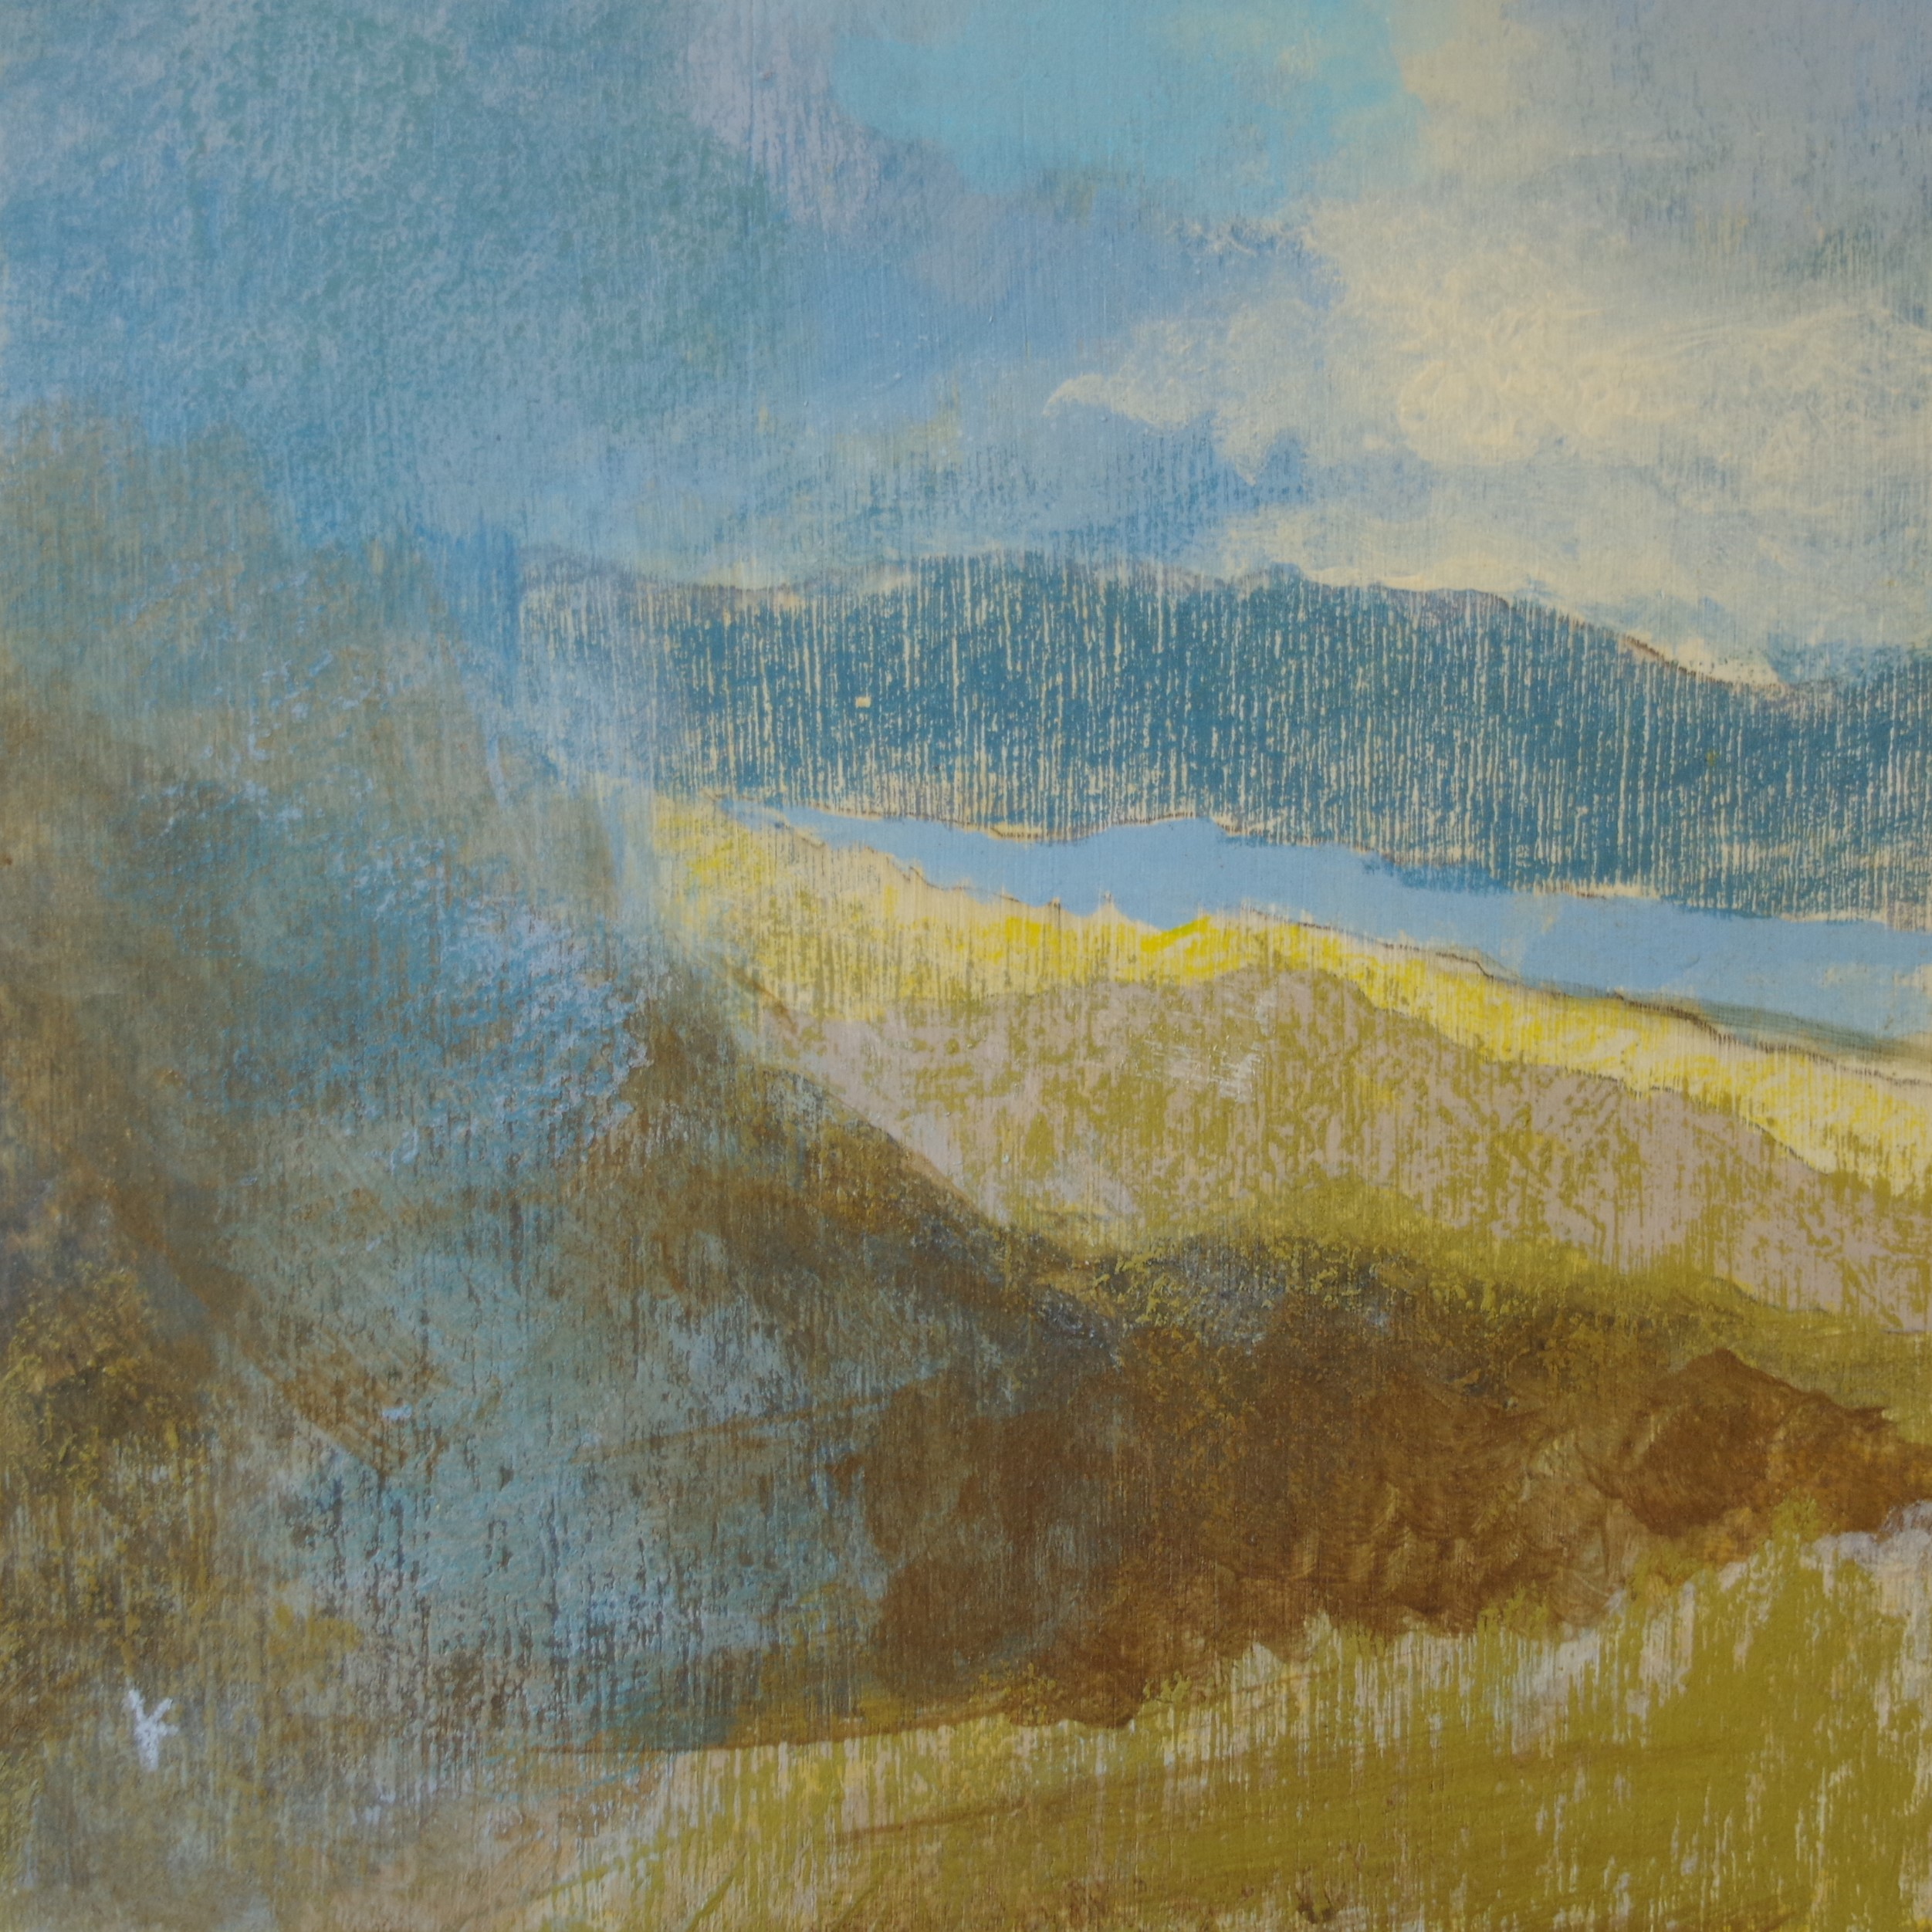 Keith Salmon. 'Loch Tay from the slopes of Ben Lawers', Acrylic & Pastel, 2017, 30 x 30cm